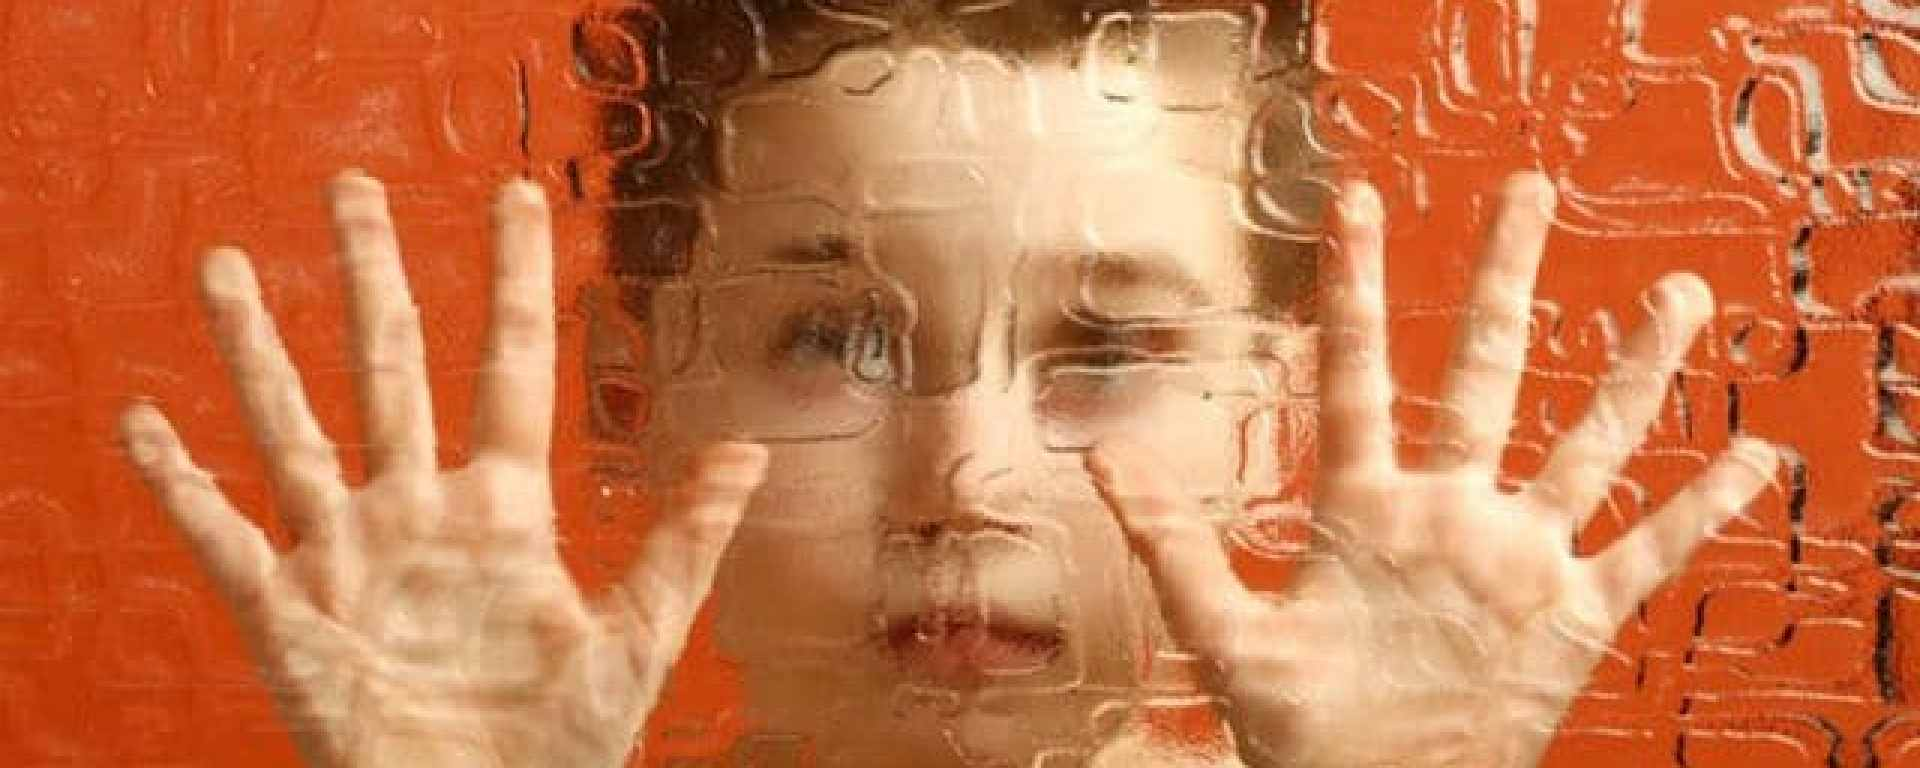 Children Today Report More Anxiety Than >> Children Today Report More Anxiety Than Child Psychiatric Patients